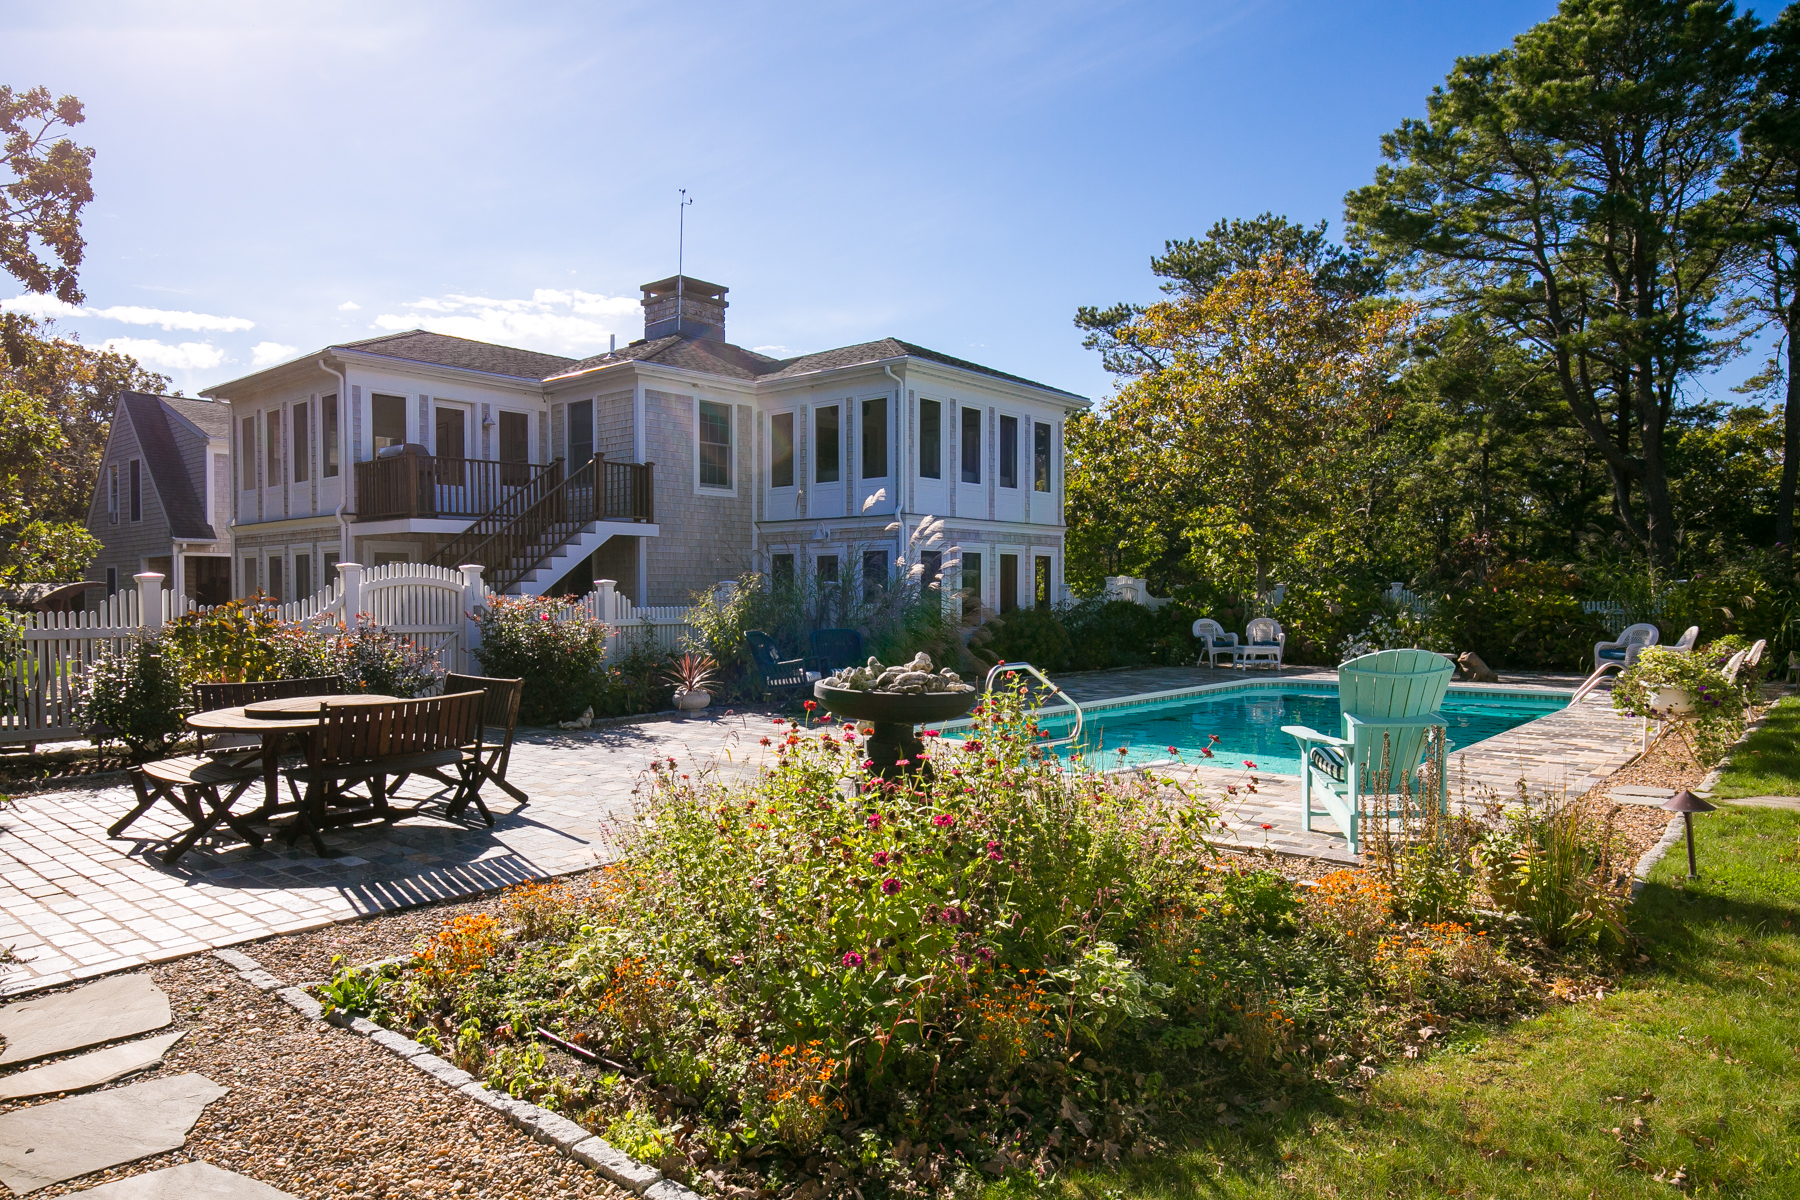 Single Family Home for Sale at Custom Chappy Home with Pool 7 Chapel Ave Edgartown, Massachusetts, 02539 United States